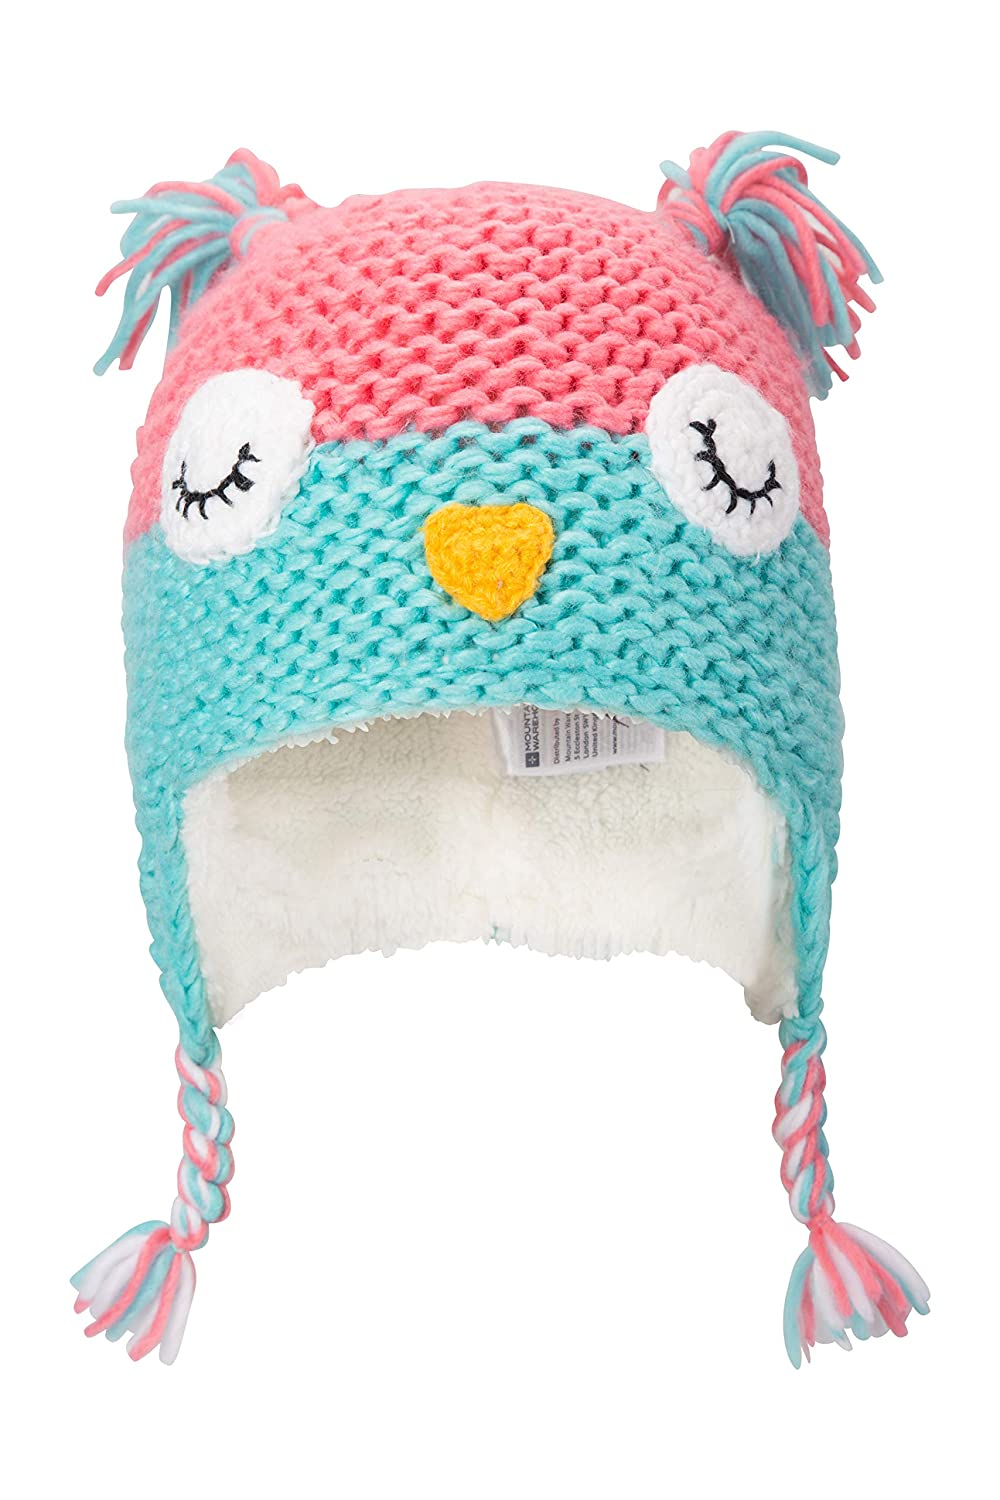 Fleece Lined Beanie Teal Mountain Warehouse Owl Knitted Kids Winter Hat